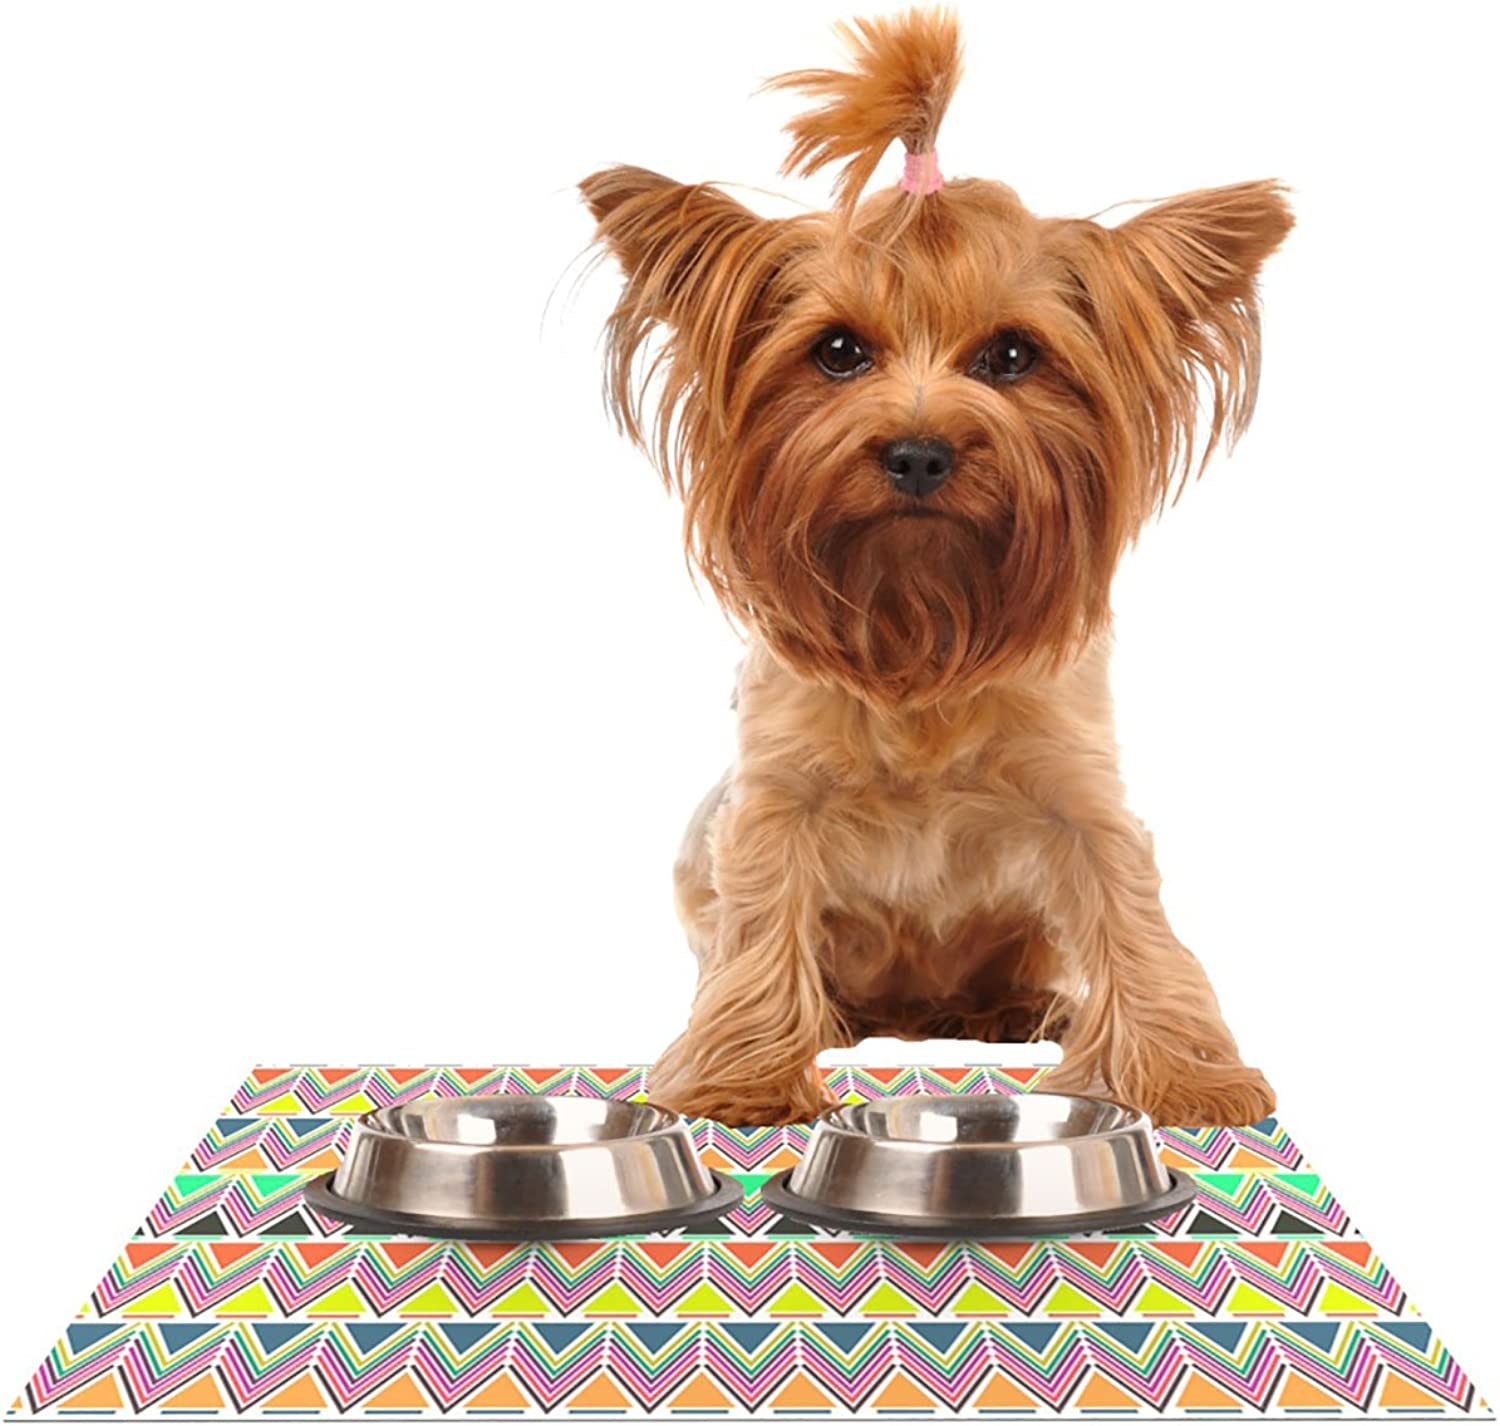 Kess InHouse Nandita Singh Pattern Play Multi  Rainbow Chevron Pet Bowl Placemat for Dog and Cat Feeding Mat, 24 by 15Inch